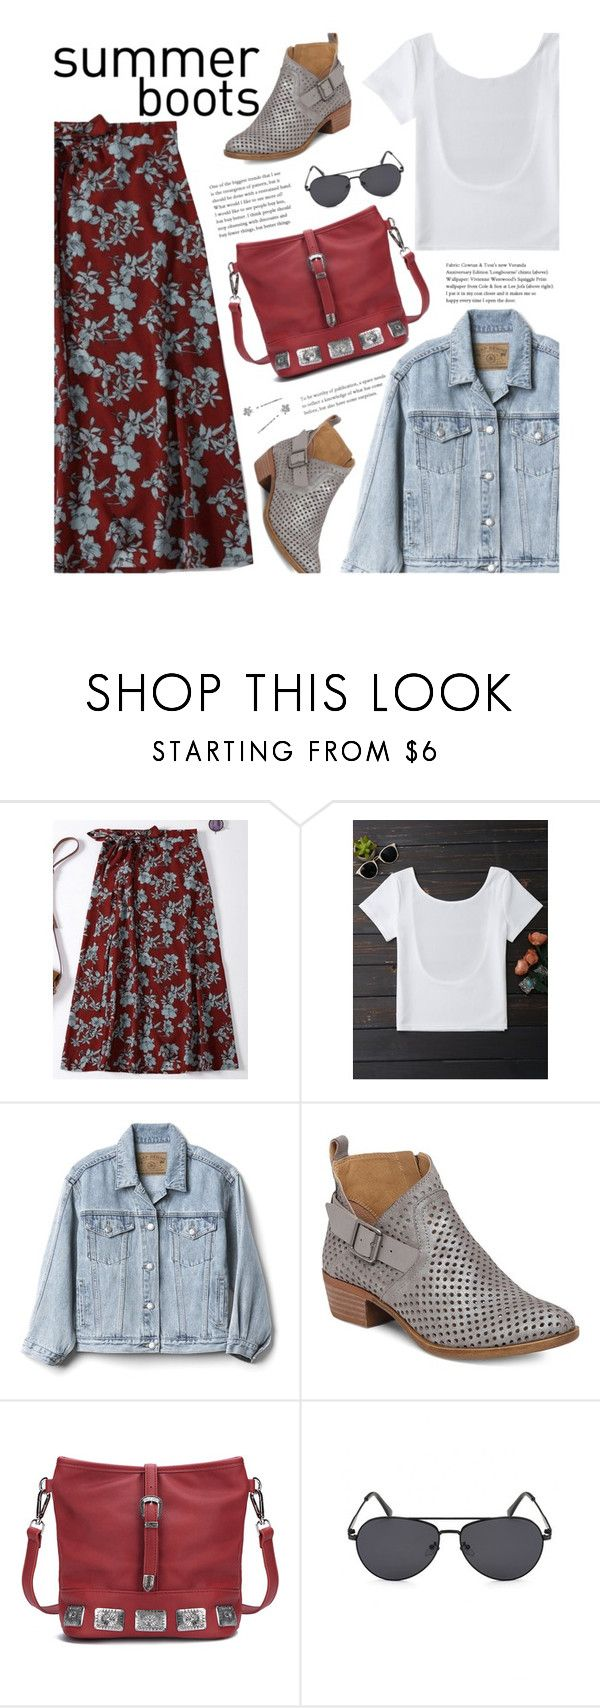 """""""Walk This Way: Summer Booties"""" by beebeely-look ❤ liked on Polyvore featuring Gap, Lucky Brand, boho, streetwear, denimjackets, Floralskirts and summerbooties"""